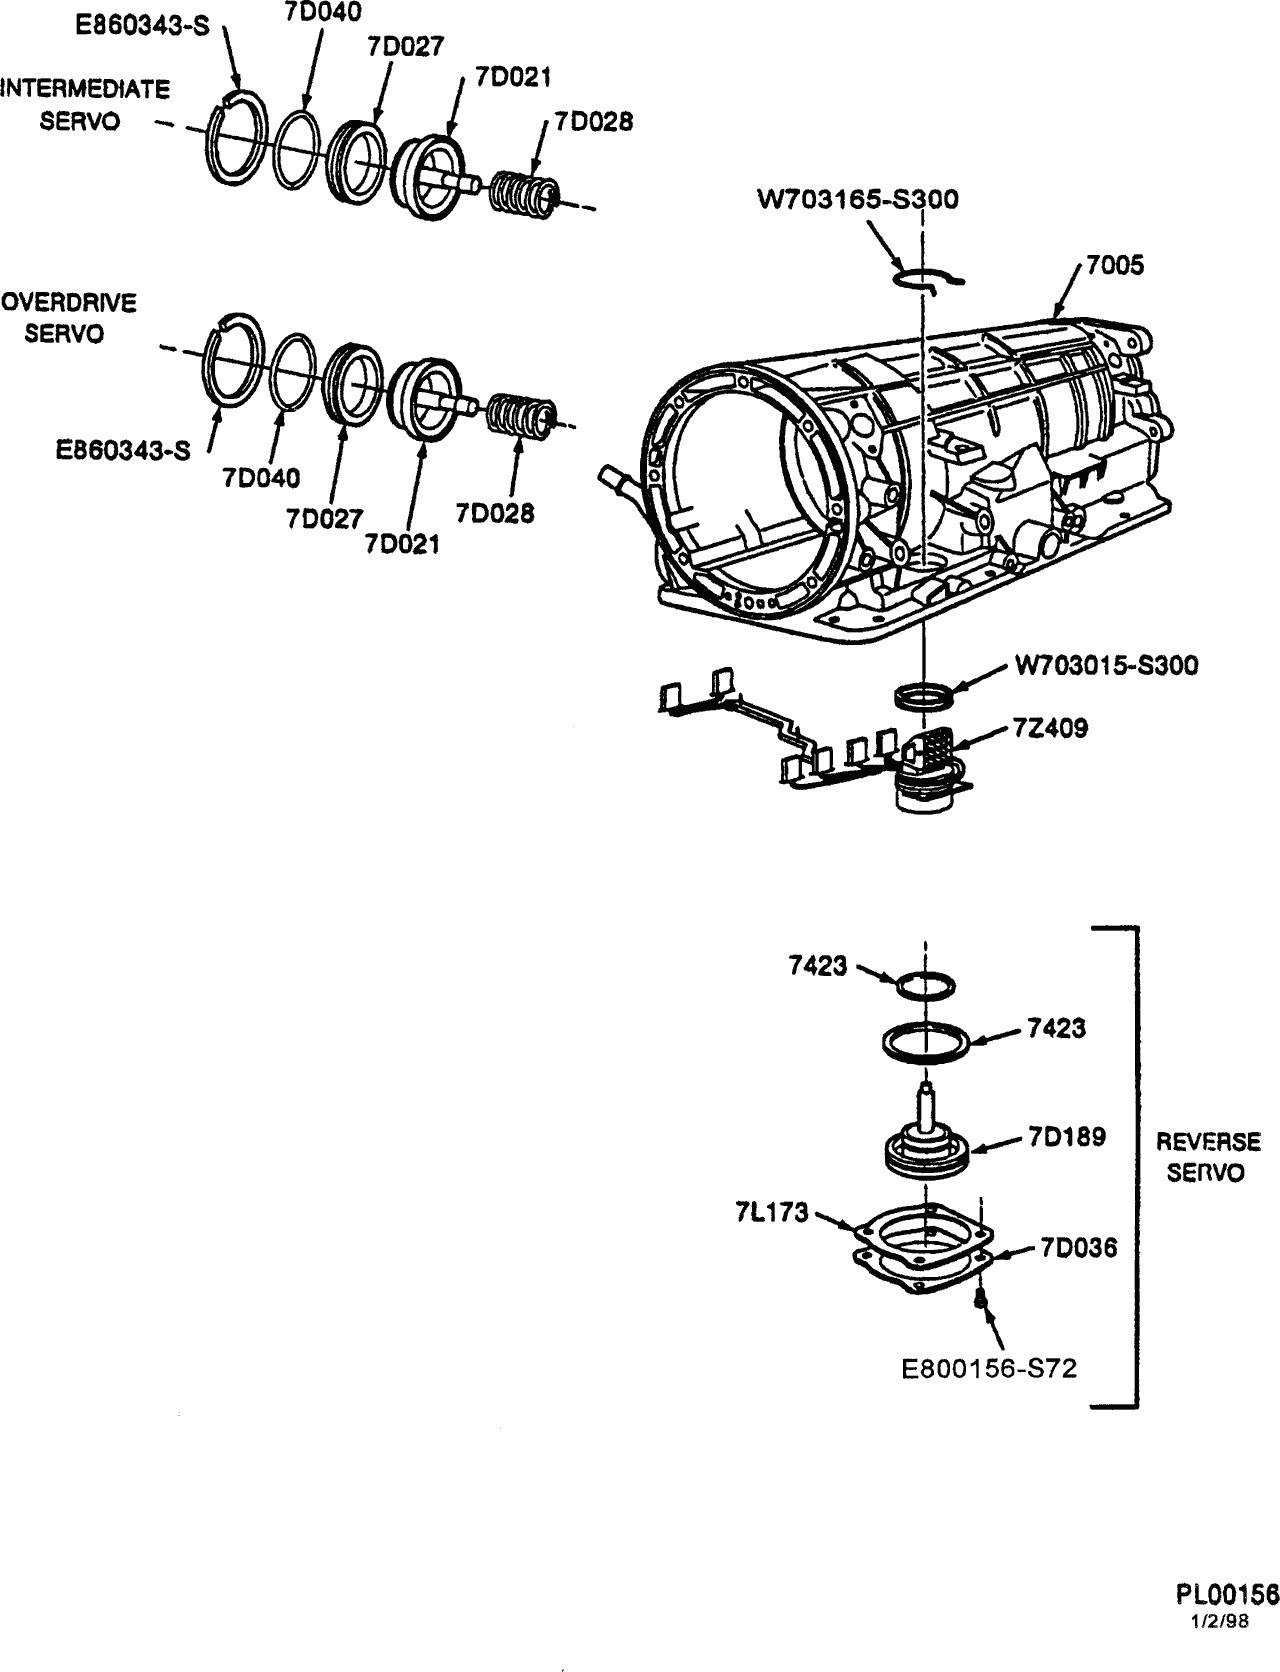 hight resolution of 2002 ford ranger parts diagram 4r70w transmission diagram wiring 1996 ford explorer transmission diagram 4r55e transmission